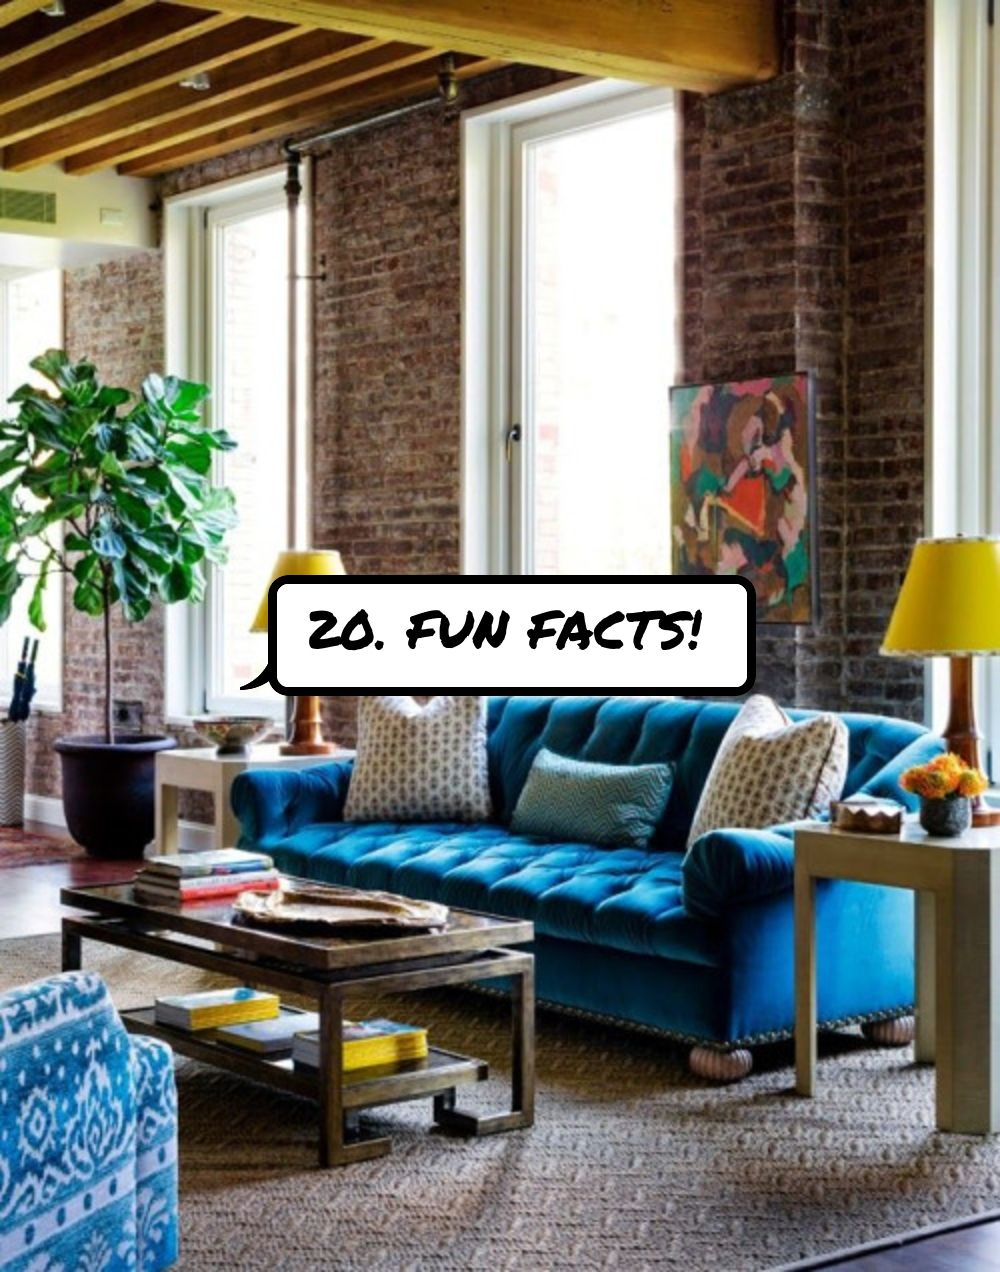 20 Fun Facts Yellow Living Room Furniture Colorful Eclectic